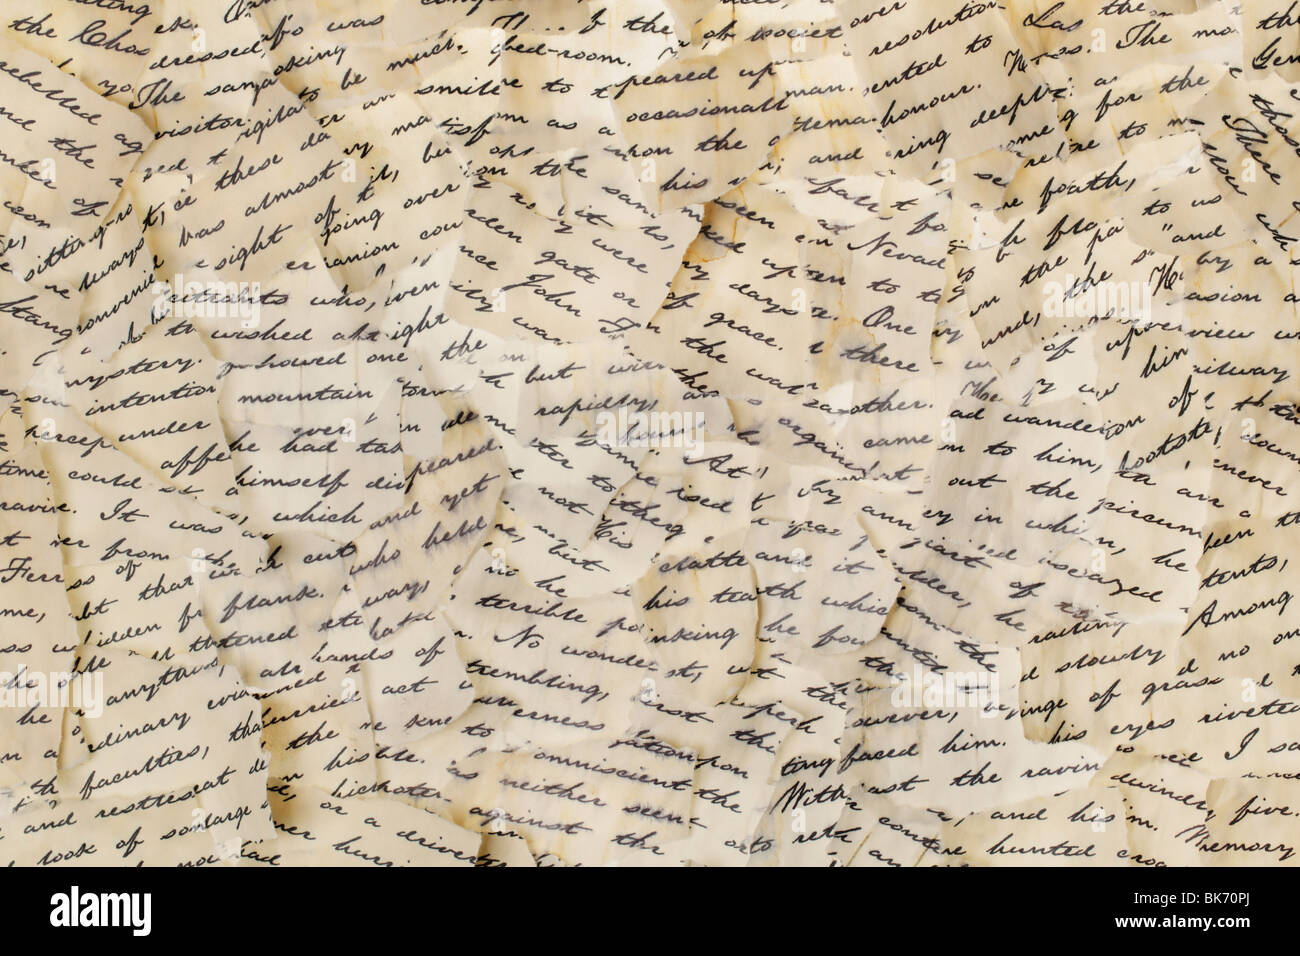 Background made of torn letters. Please note: the image may appear grainy, but that is the structure of the paper. - Stock Image